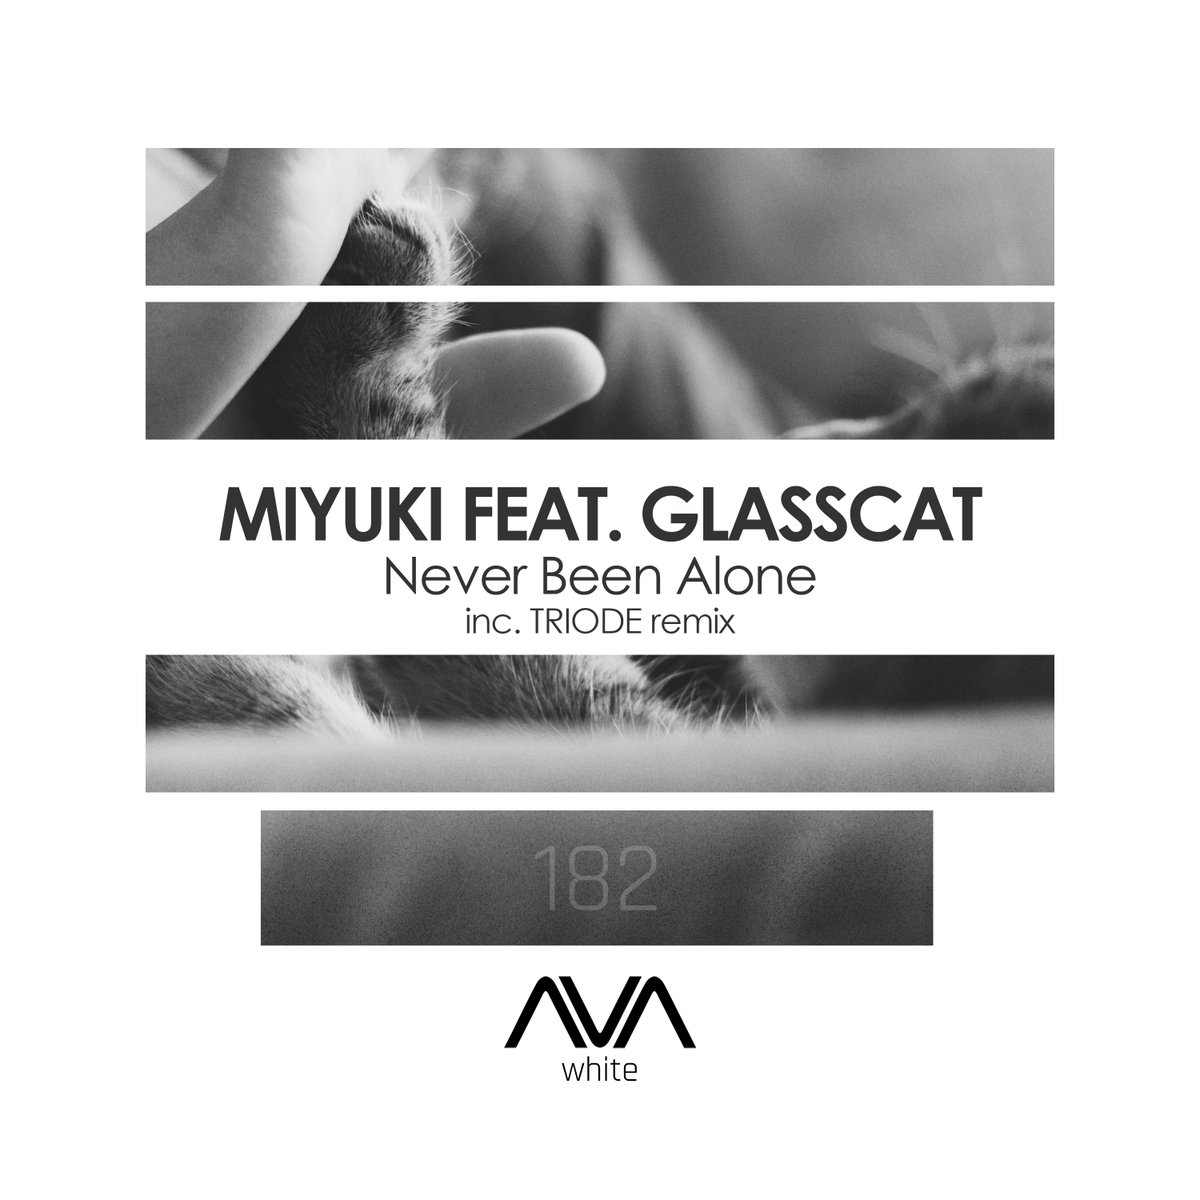 This is the last track of the show, 'Never Been Alone' by @miyukicreates feat. Glasscat coming out on  @AVARecordings White.  Thanks for joining me in this episode. In two weeks at the same time a new episode of #ReanimateMusic, see you! #trance #trancefamily https://t.co/VppfPrzJH2